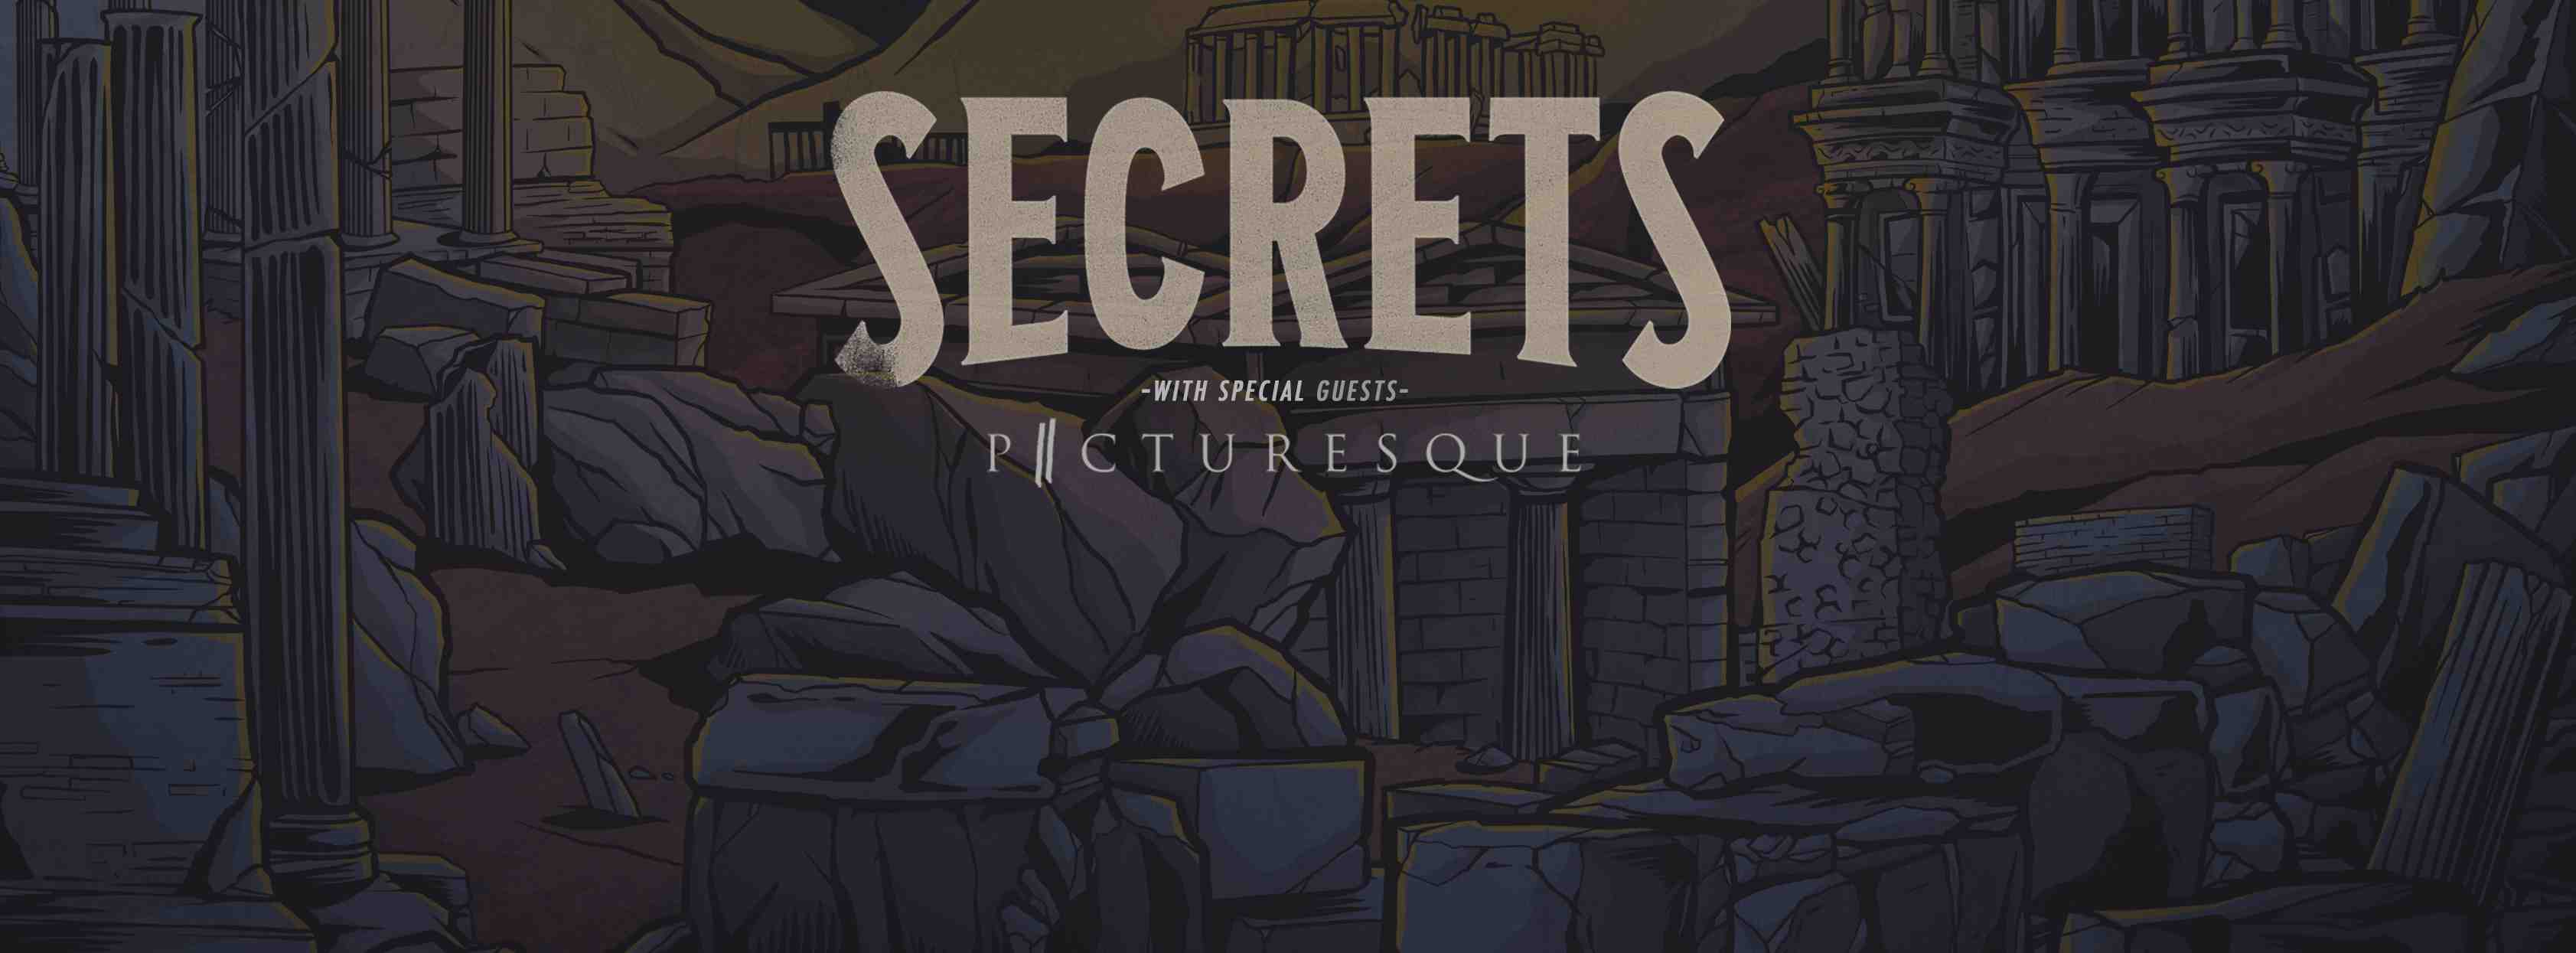 Secrets, Picturesque & More Live In Ottawa March 22nd